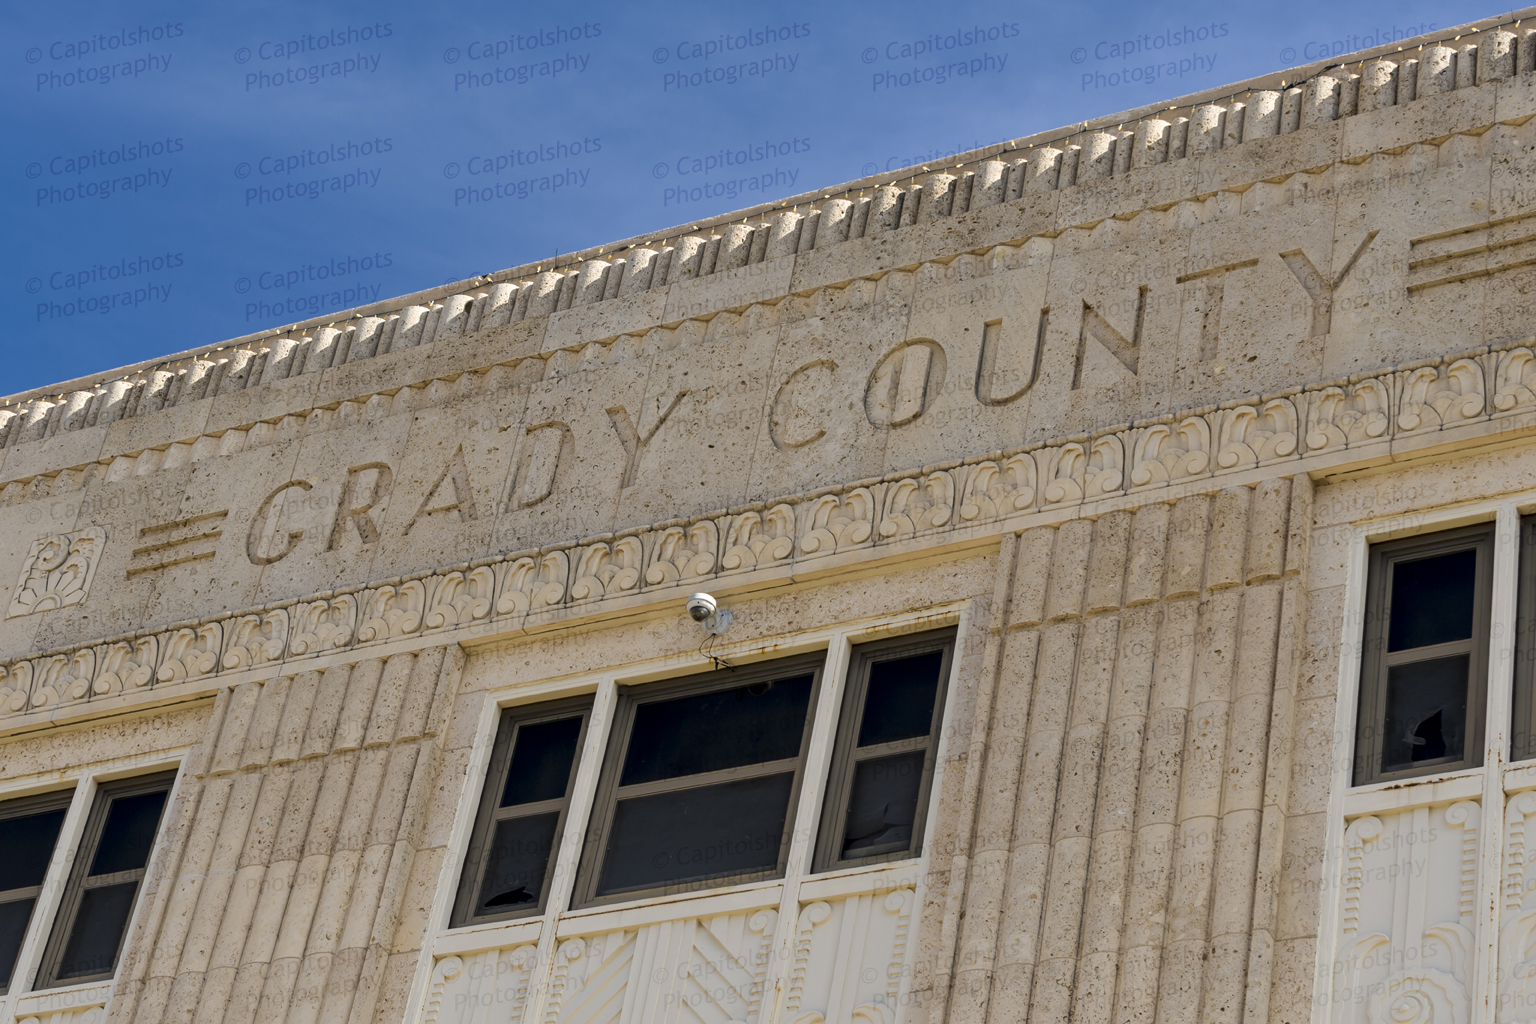 grady county Grady county, on the southwest border of georgia, is the state's 139th county created in 1906 from portions of decatur and thomas counties, it was named after henry w grady, prominent editor of the atlanta constitution and famed southern orator who widely prophesied the new south.